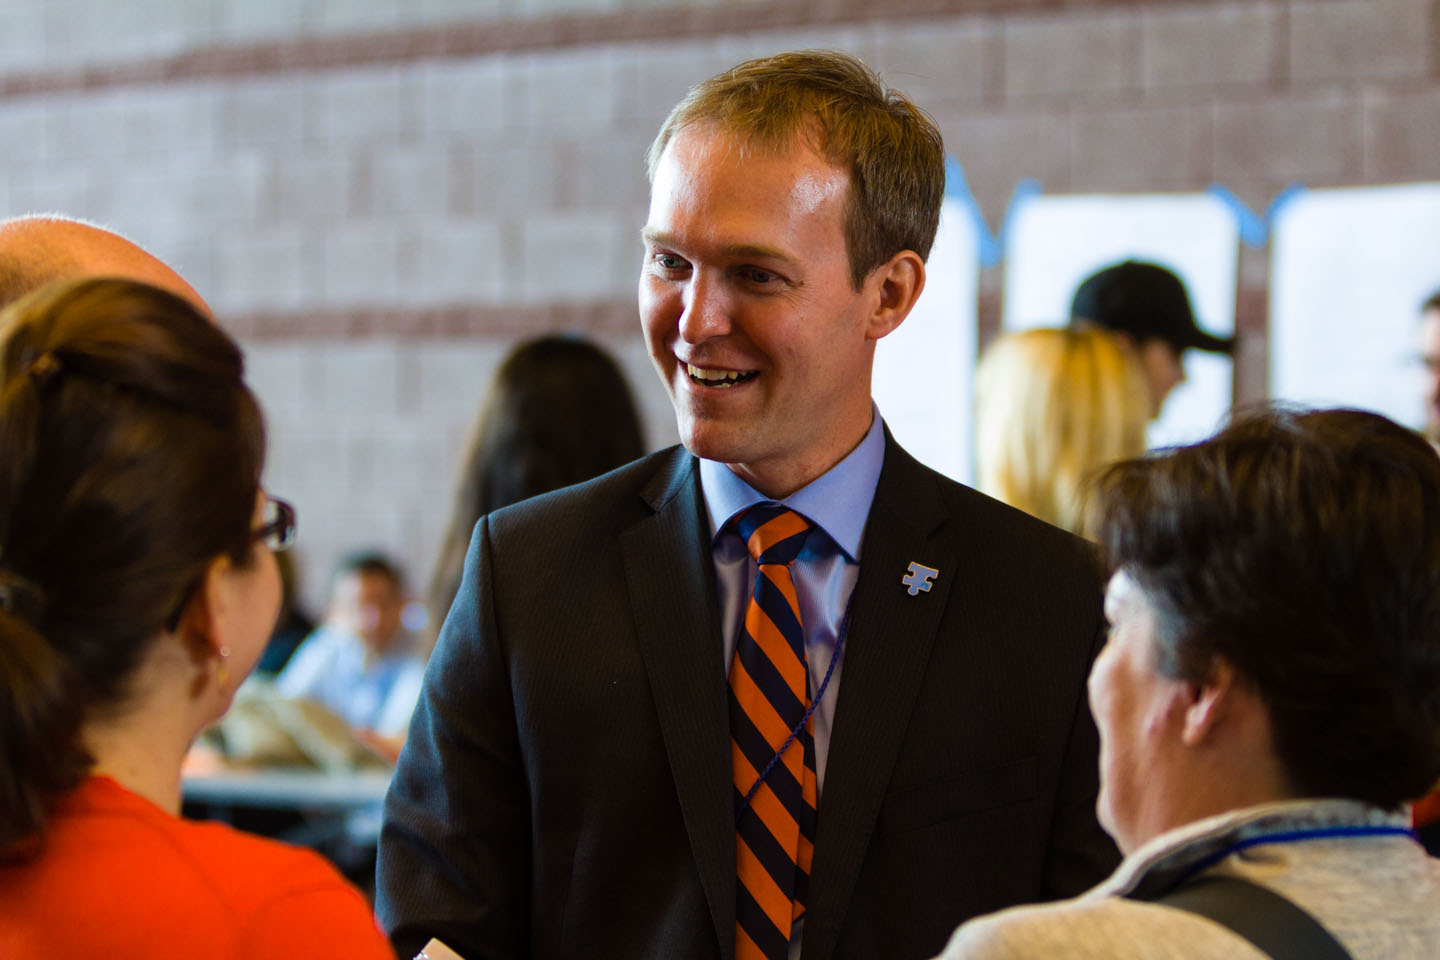 Ben McAdams later wins the convention vote to be the Democrat nominee